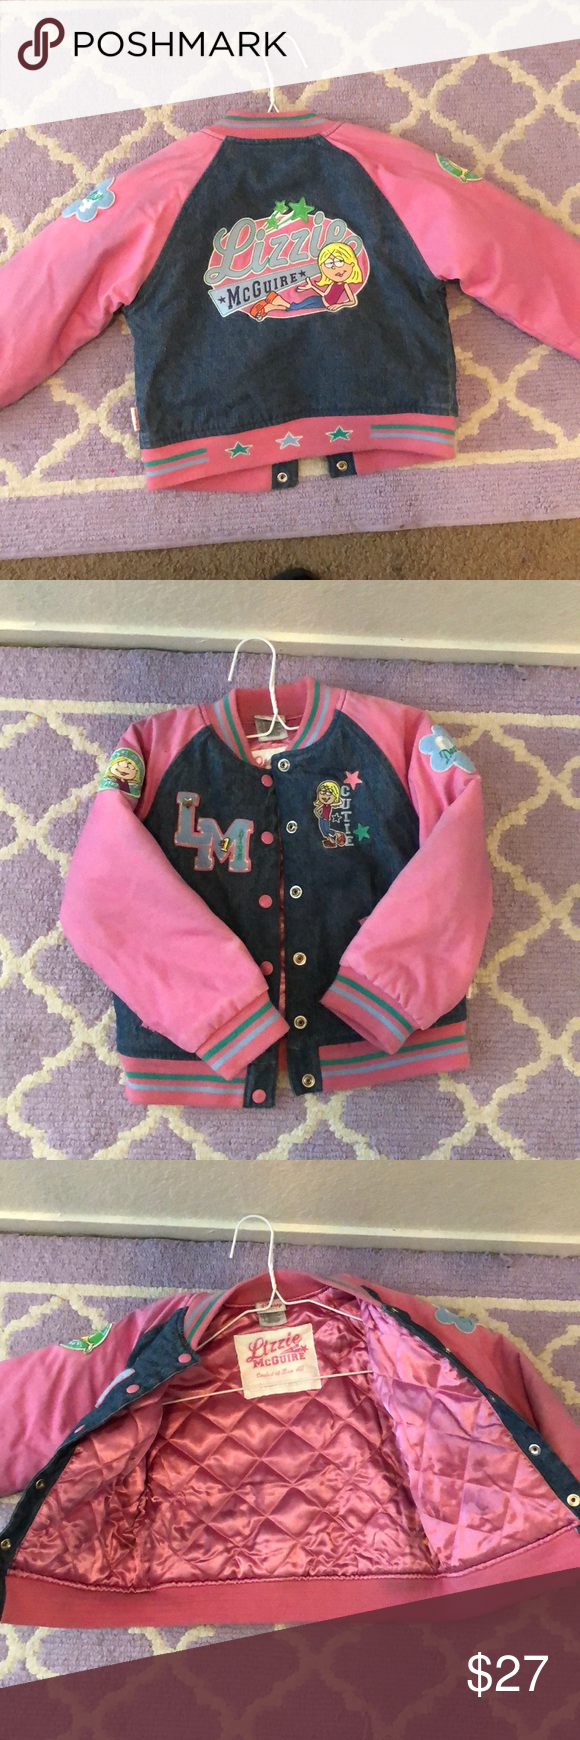 Lizzie McGuire Varsity jacket Pink and denim Disney Jackets & Coats Puffers #lizziemcguire Lizzie McGuire Varsity jacket Pink and denim Disney Jackets & Coats Puffers #lizziemcguire